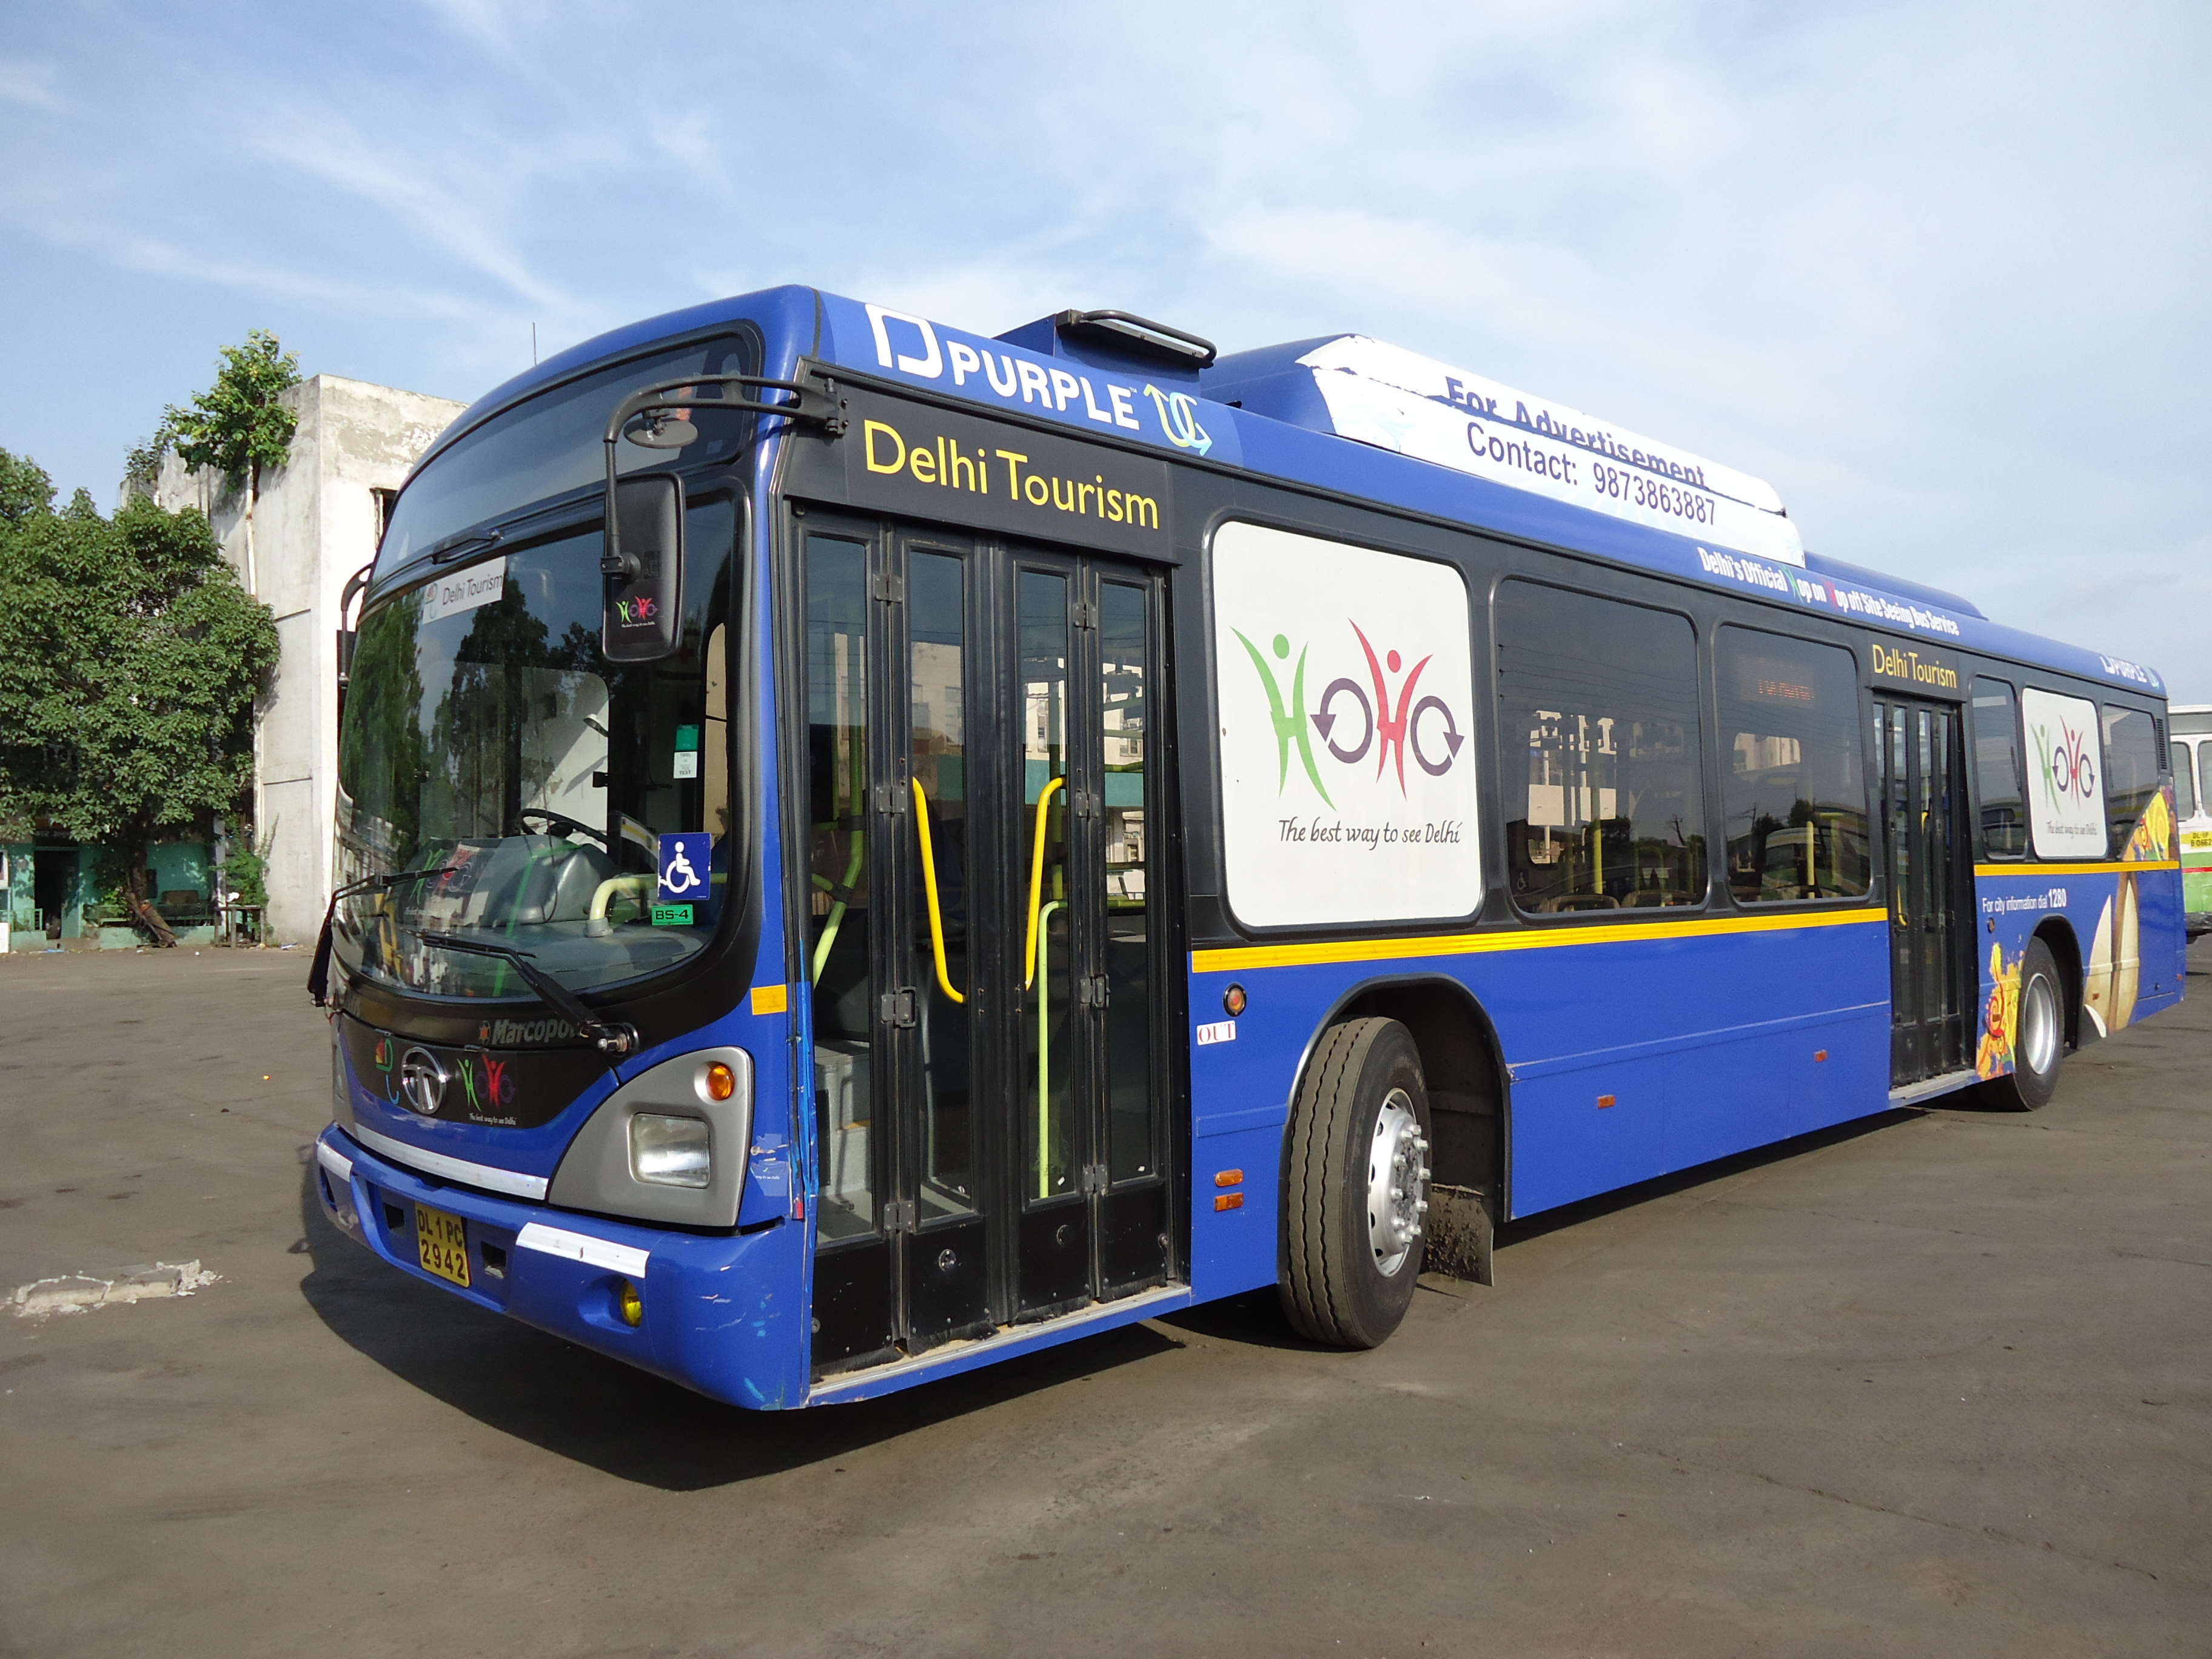 New HOHO-like buses to make your rides exploring Delhi more exciting